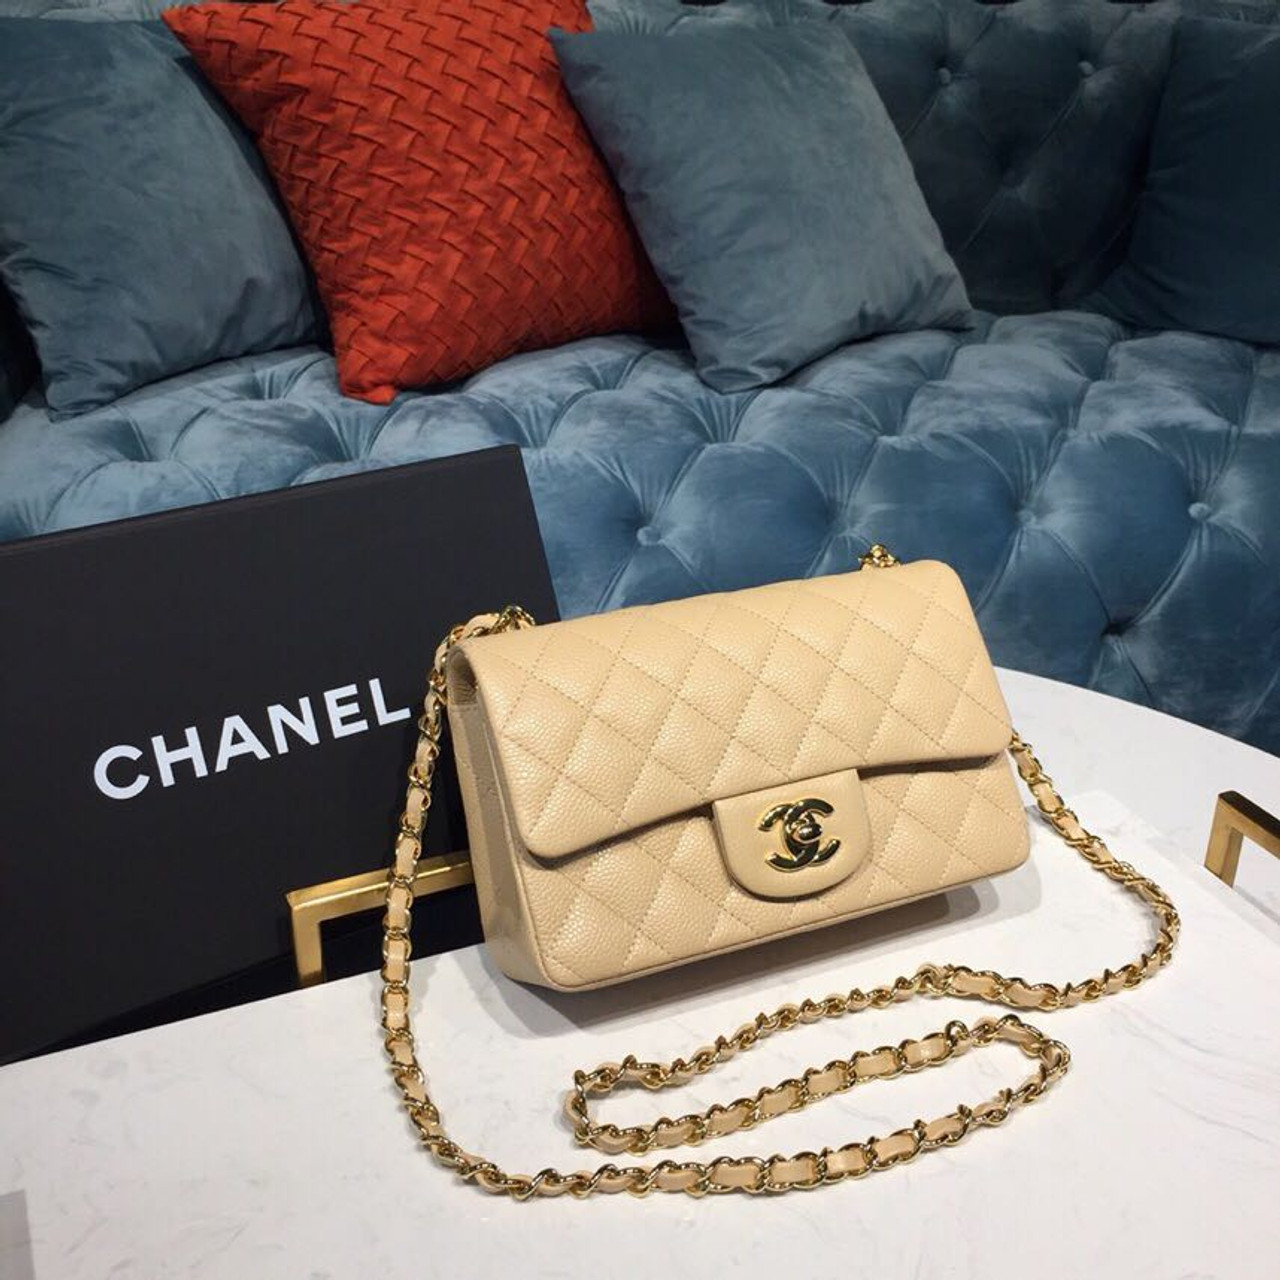 538f6b5d11af2 Chanel Classic Flap Bag 20cm Lambskin Leather Gold Hardware Spring/Summer  2019 Act 1 Collection